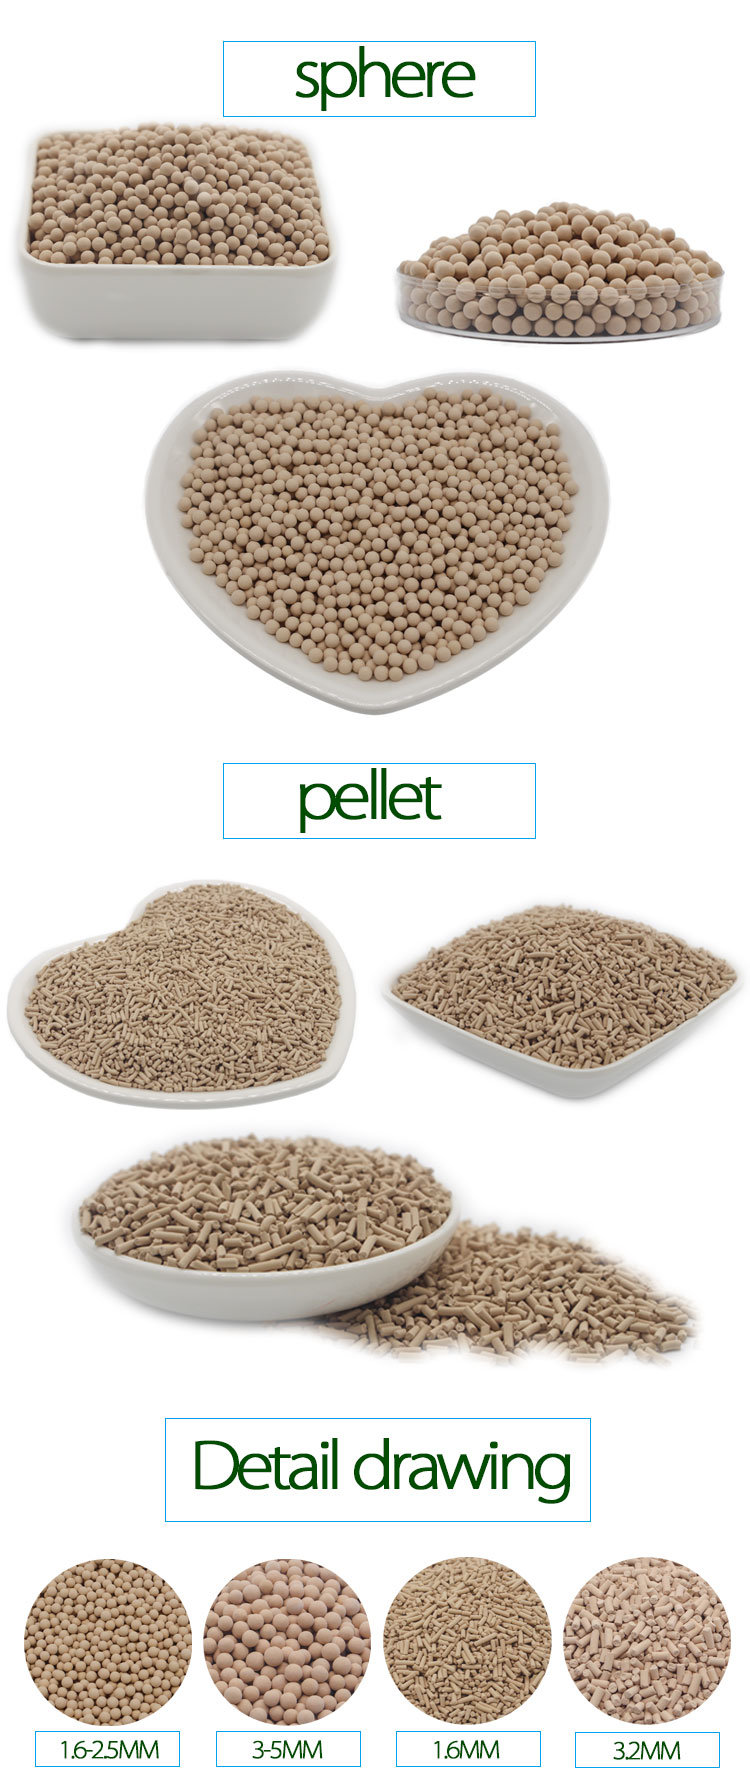 4A Molecular Sieve with Excellent Water Adsorption